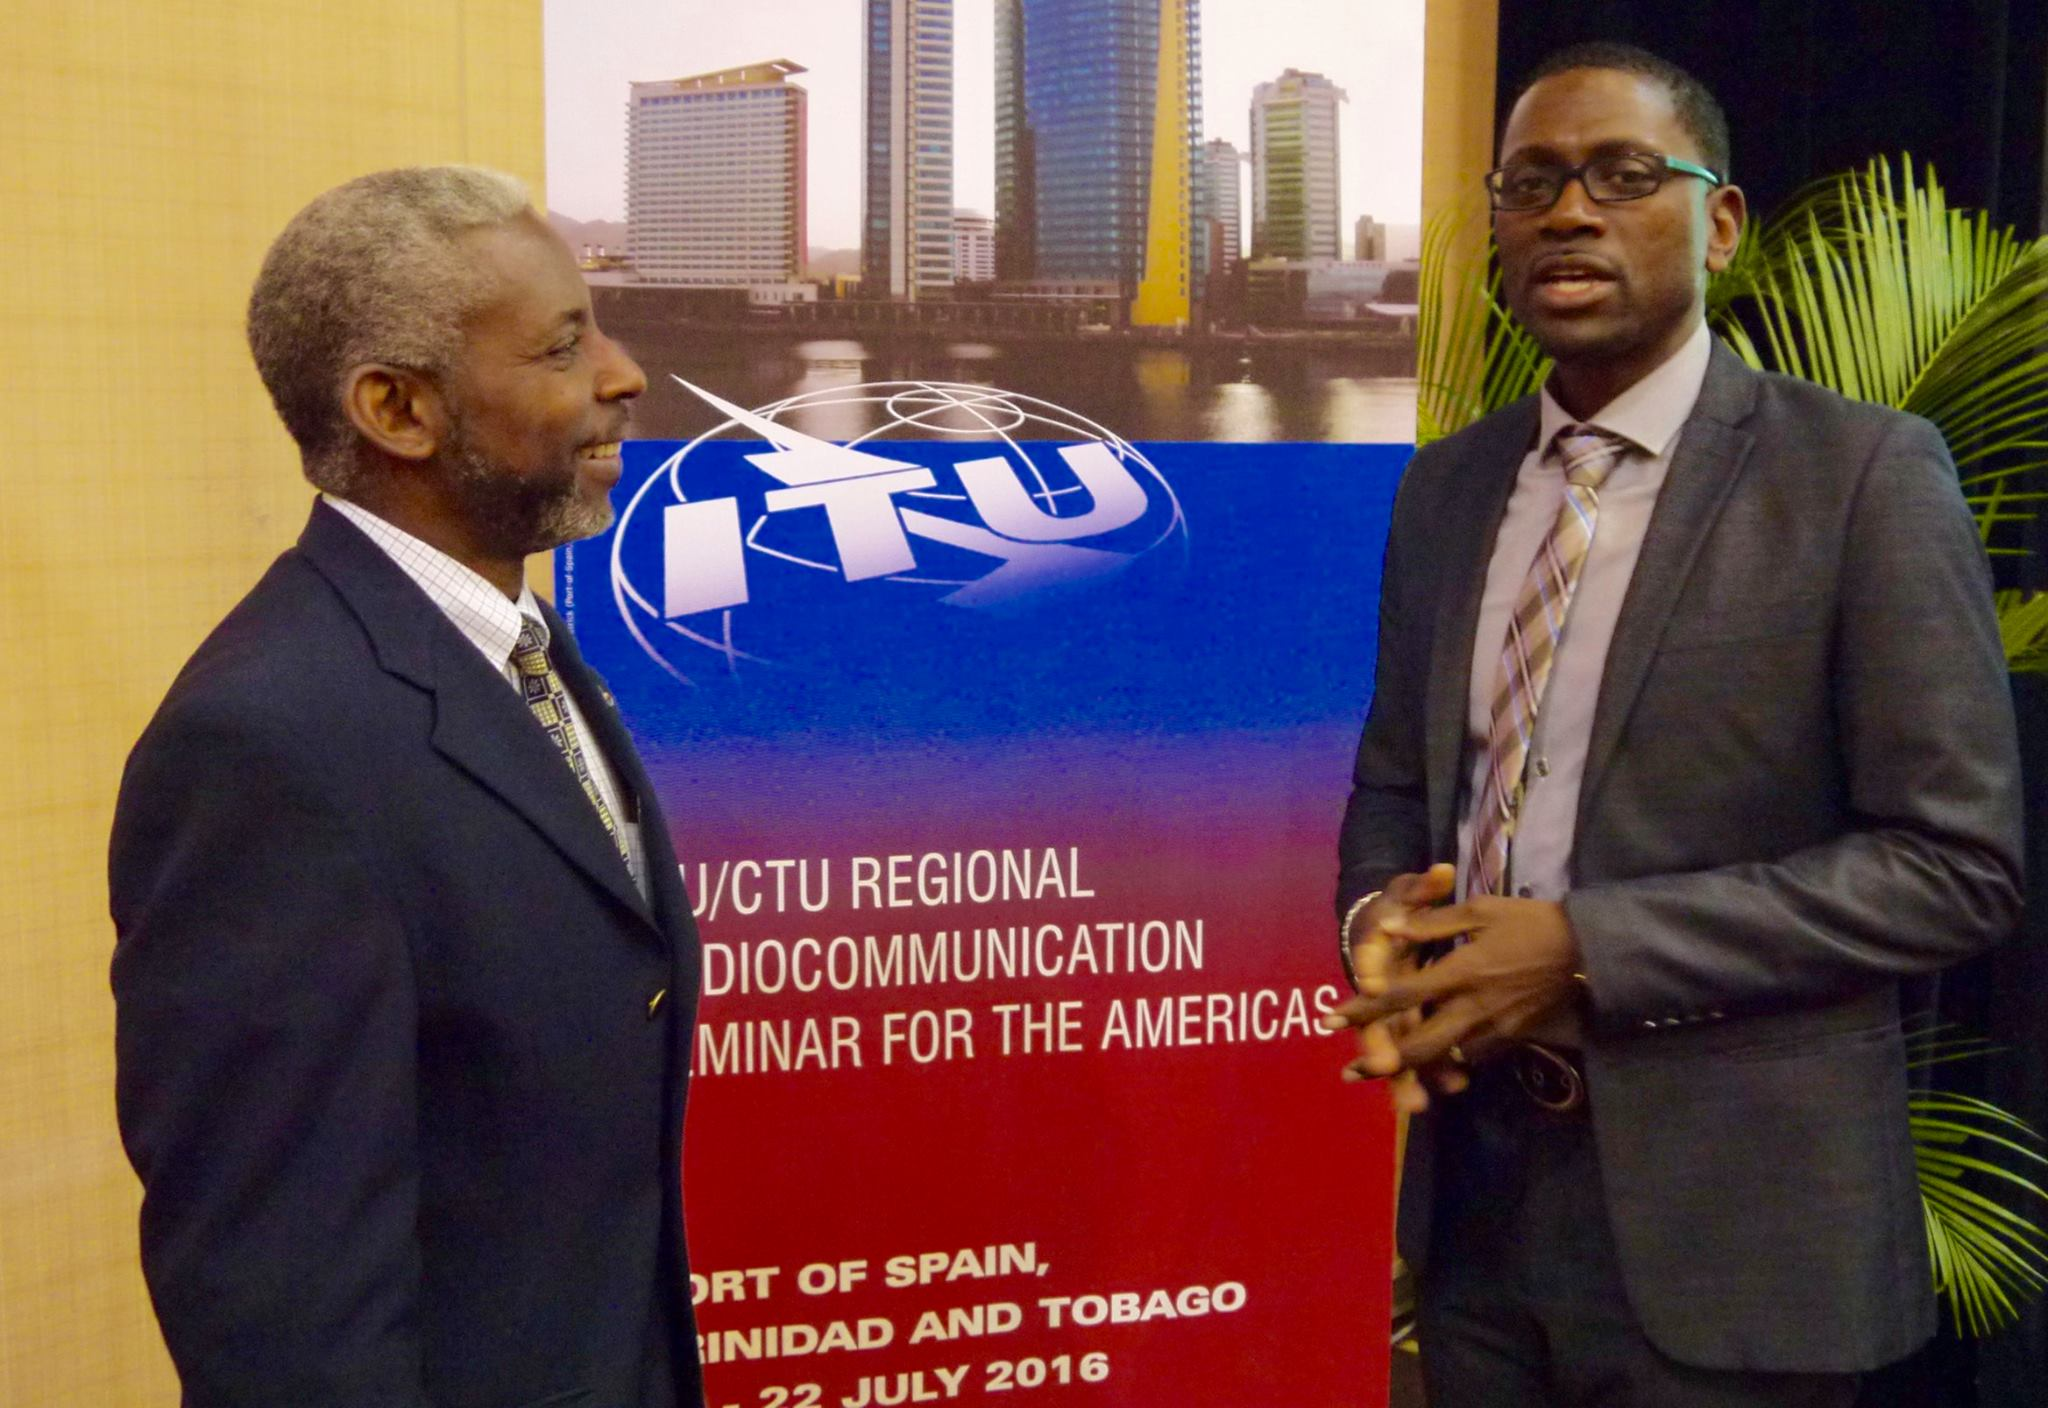 Nigel Cassimire, Acting Secretary General, Caribbean Telecommunications Union, left, and Cleveland Thomas, ITU Area Representative for the Caribbean at International Telecommunication Union, at the Regional Radiocommunication Seminar for the Americas